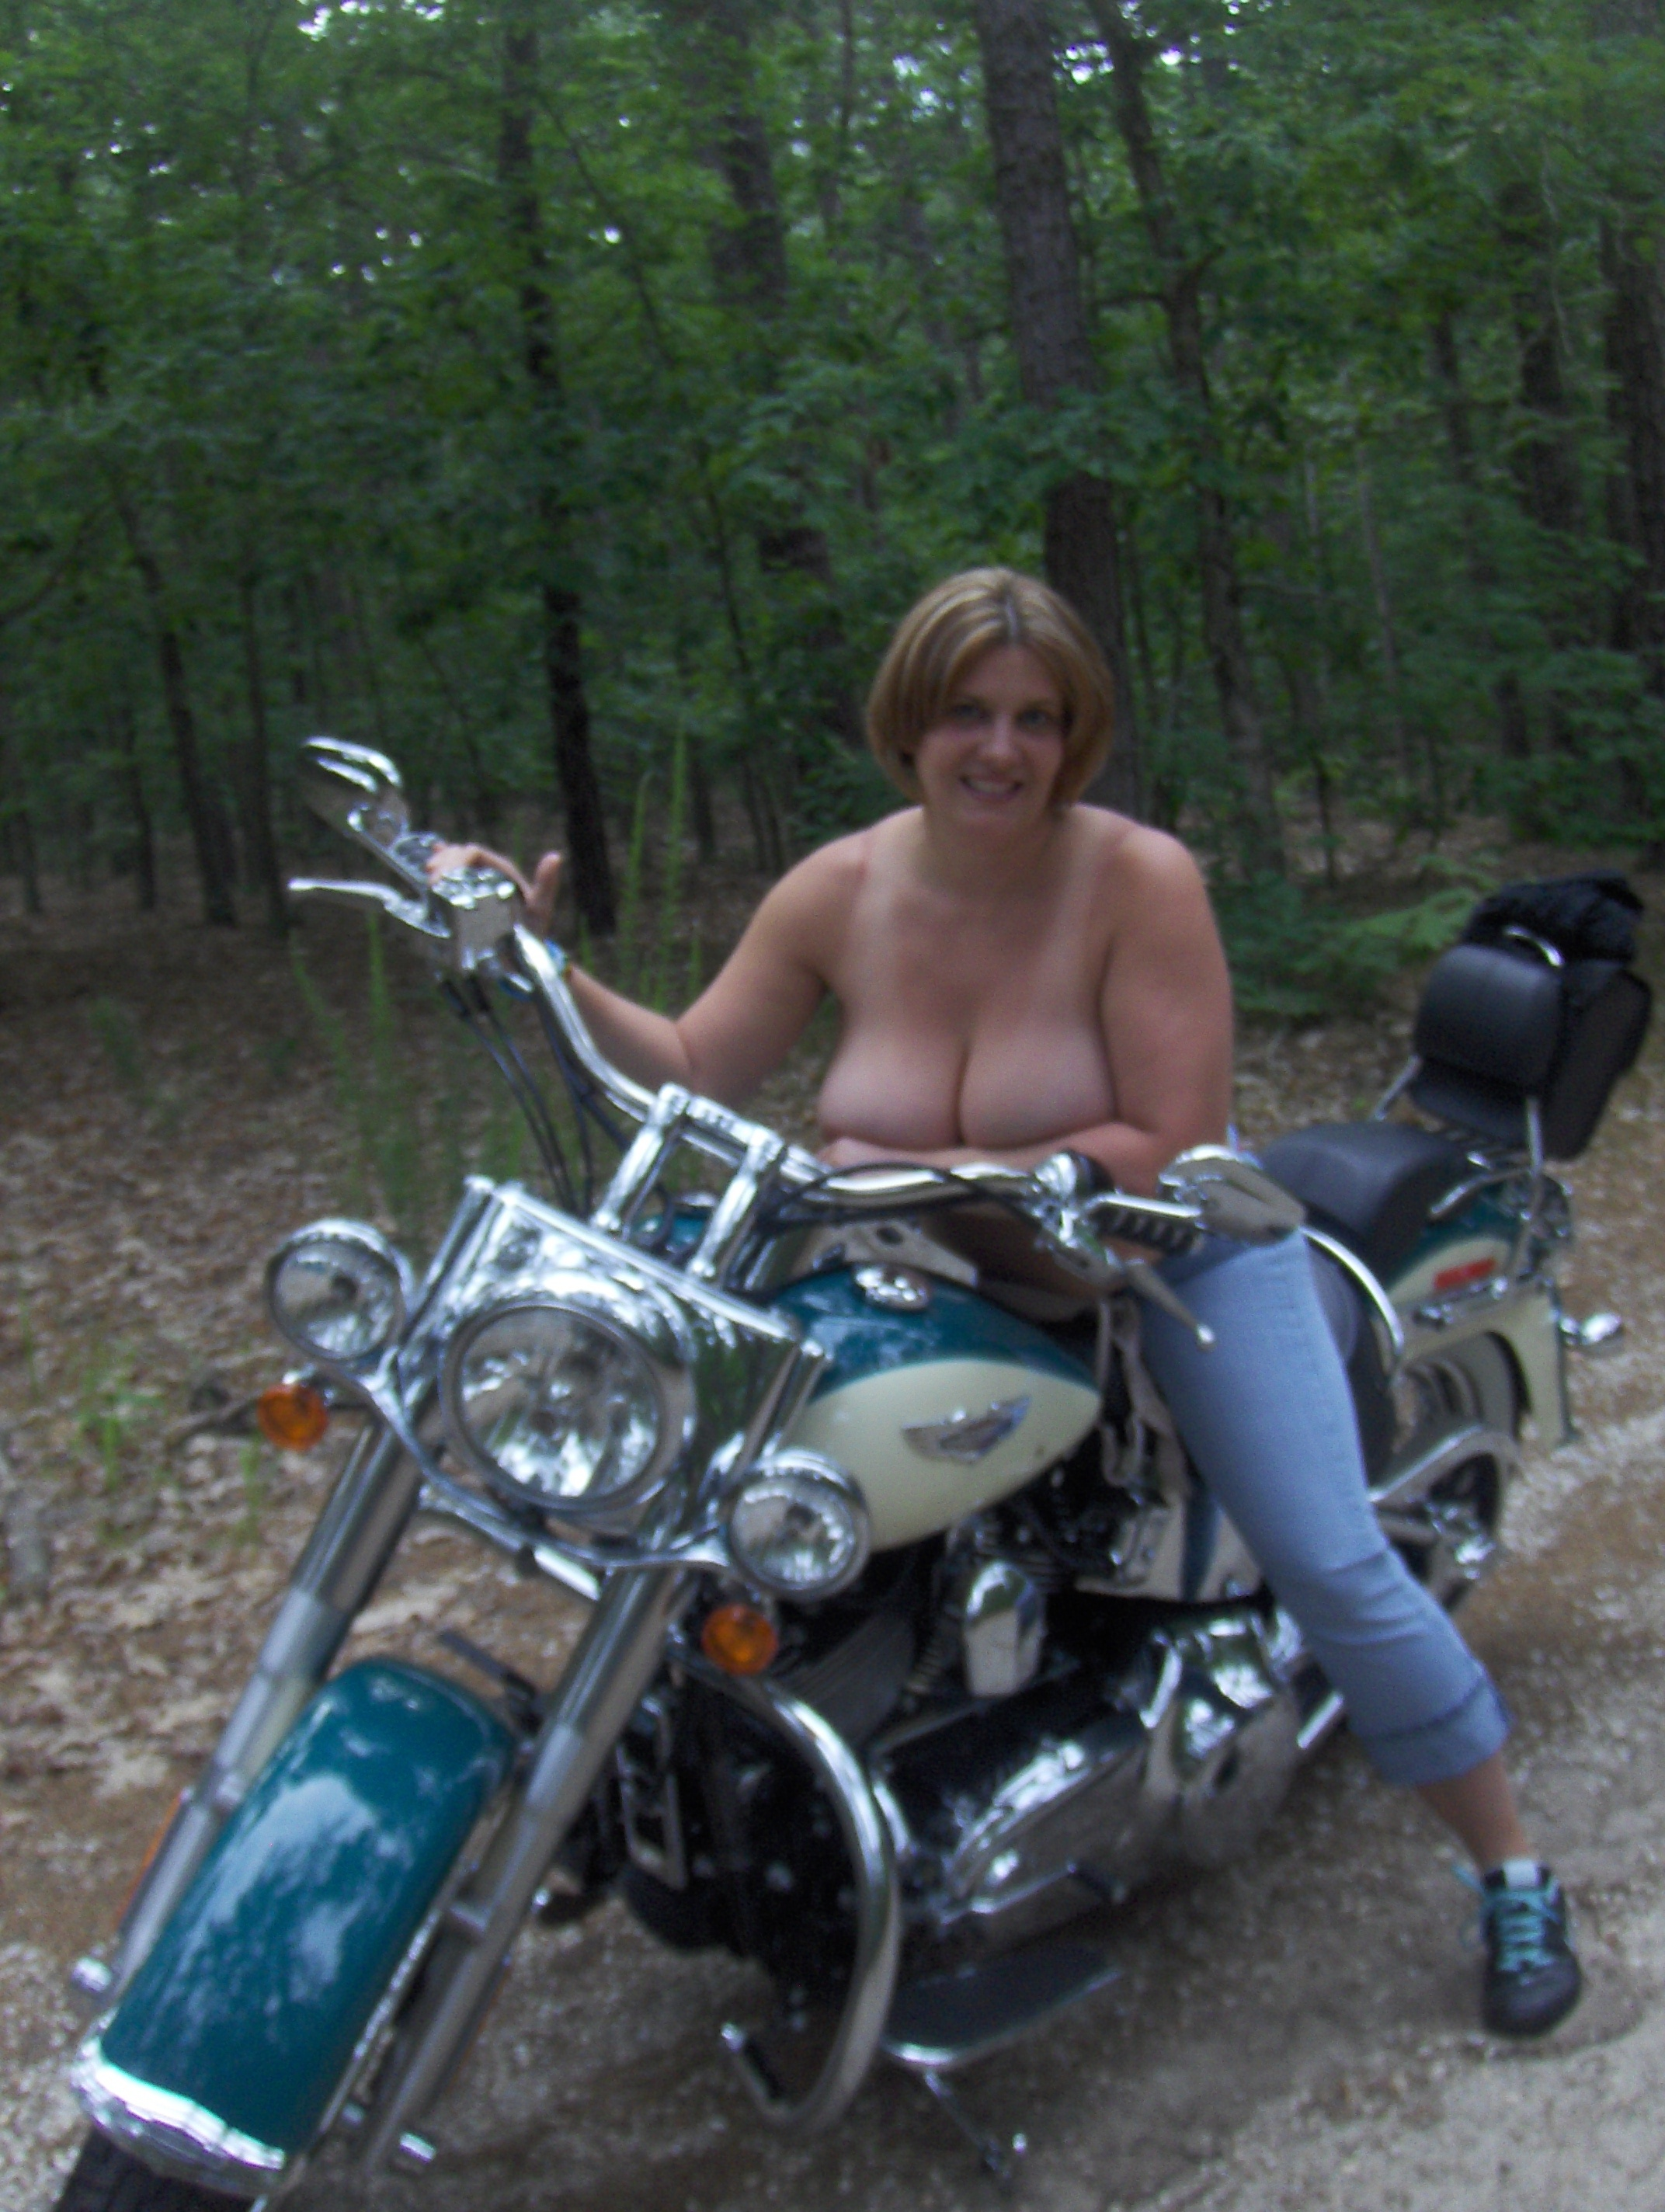 amateur-motorcycle-porn-ebony-women-gallery